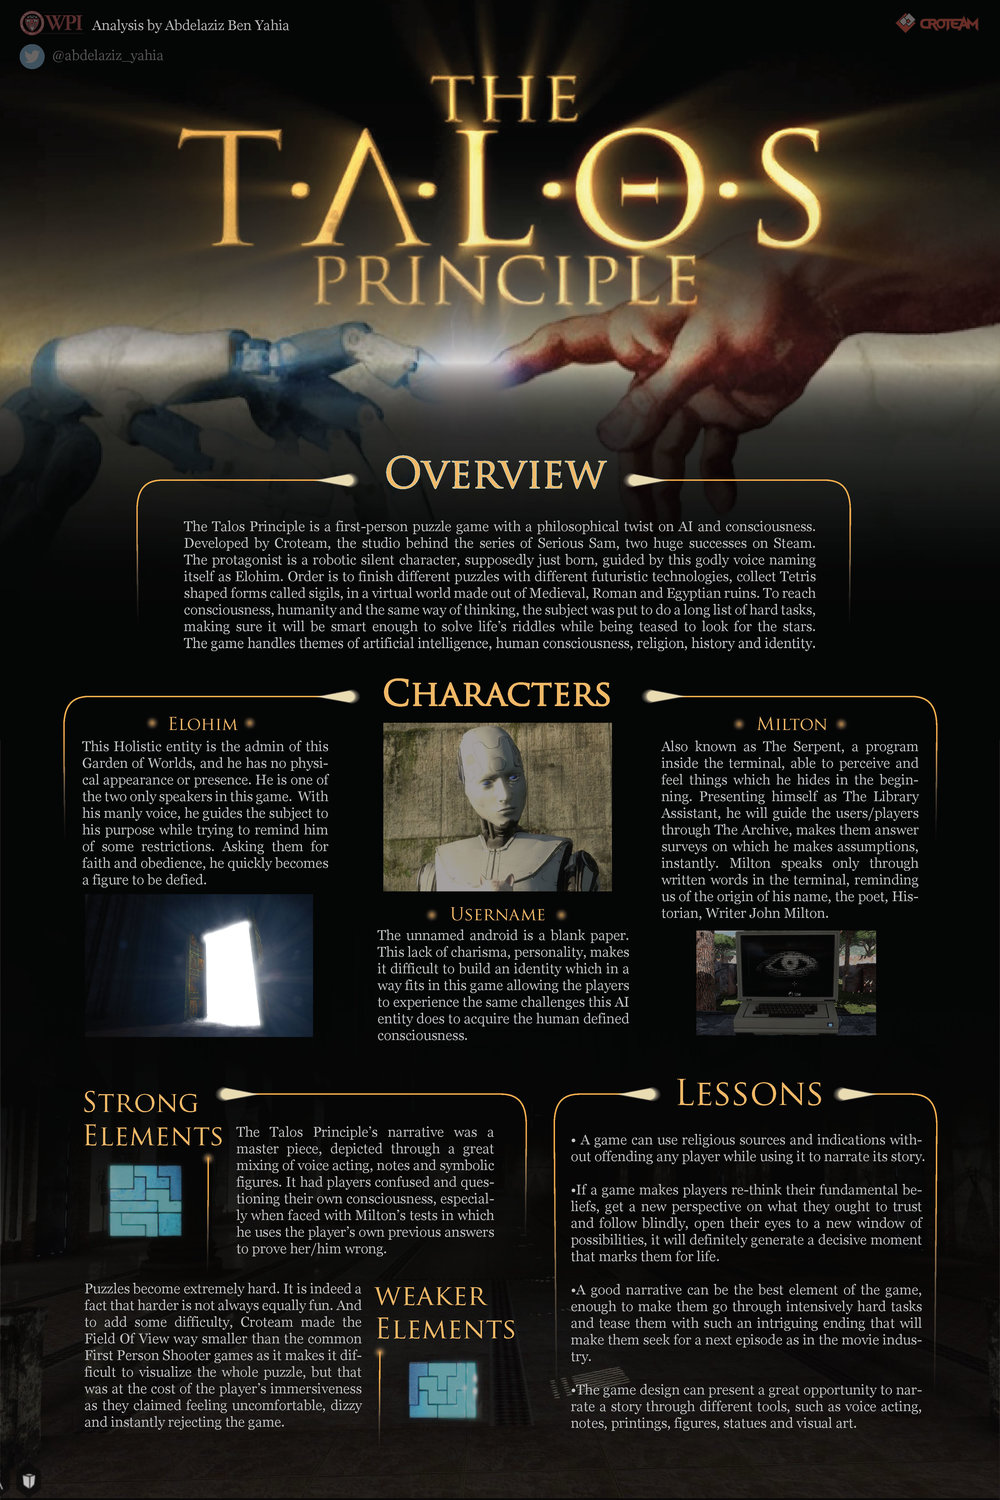 Narrative Review by Abdelaziz Ben Yahia, background image and title from The Talos Principle.